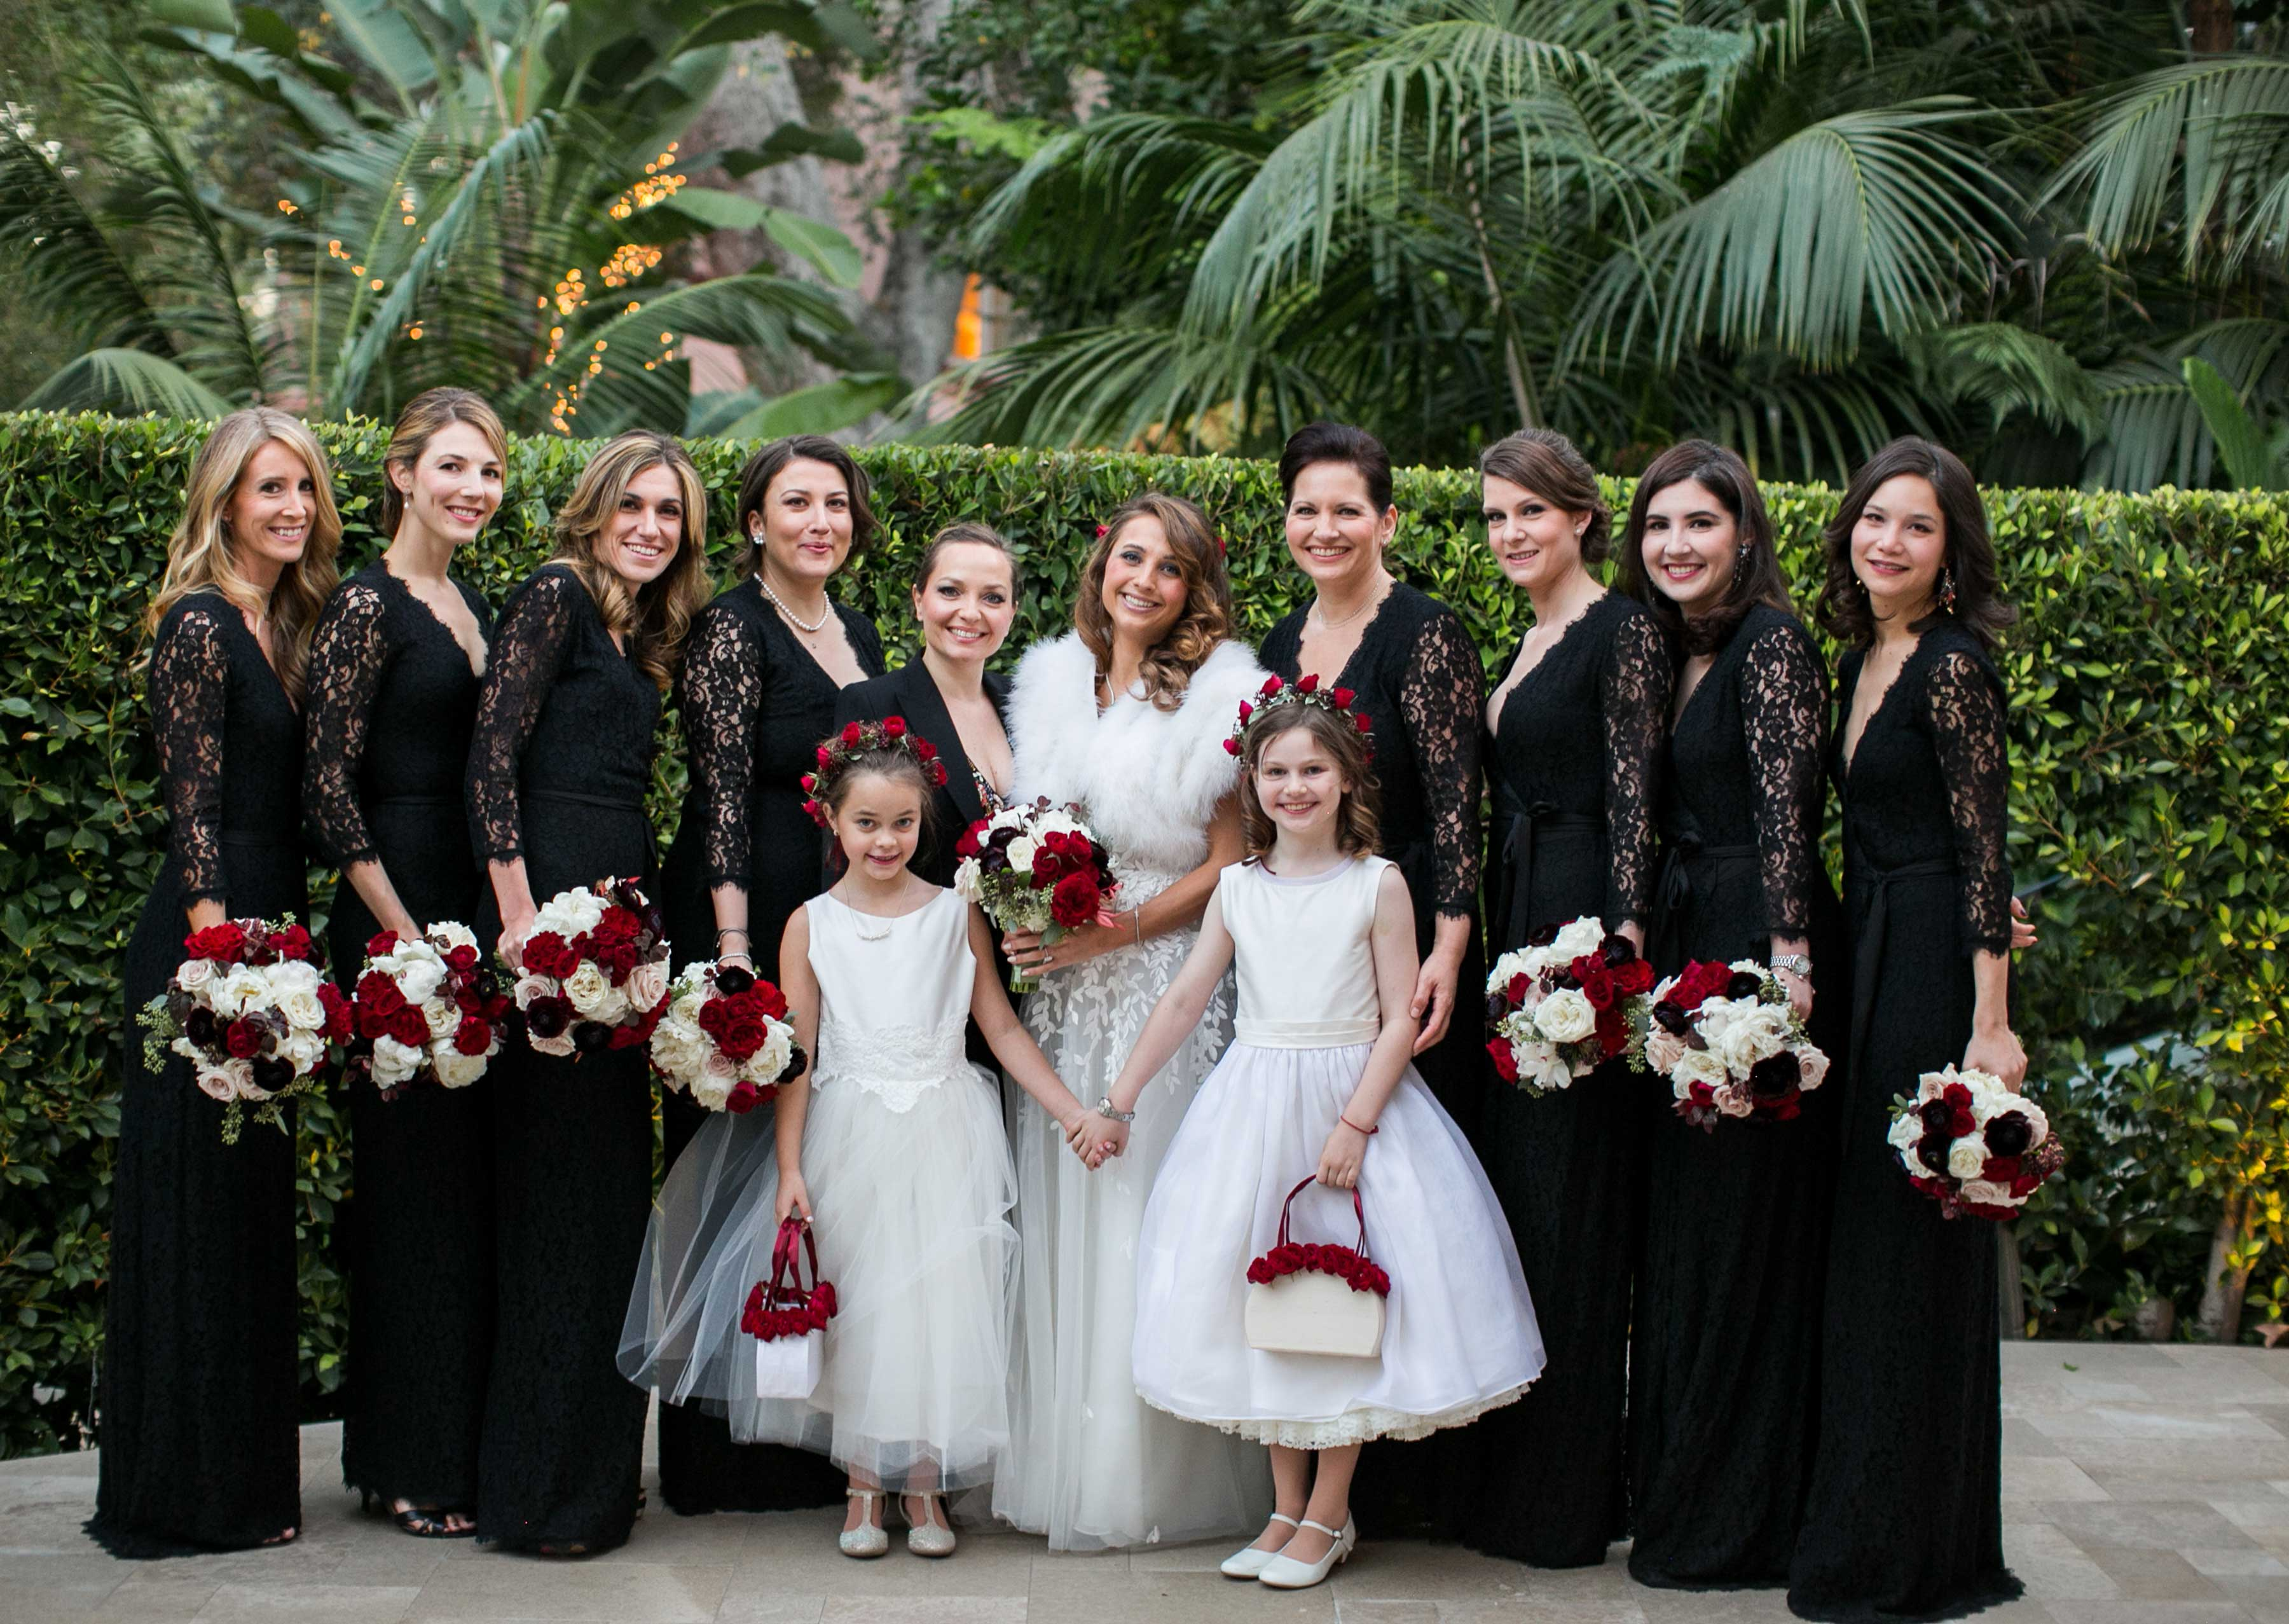 Christmas color wedding black bridesmaid dresses red flowers bride in fur shawl Inside Weddings winter 2017 issue